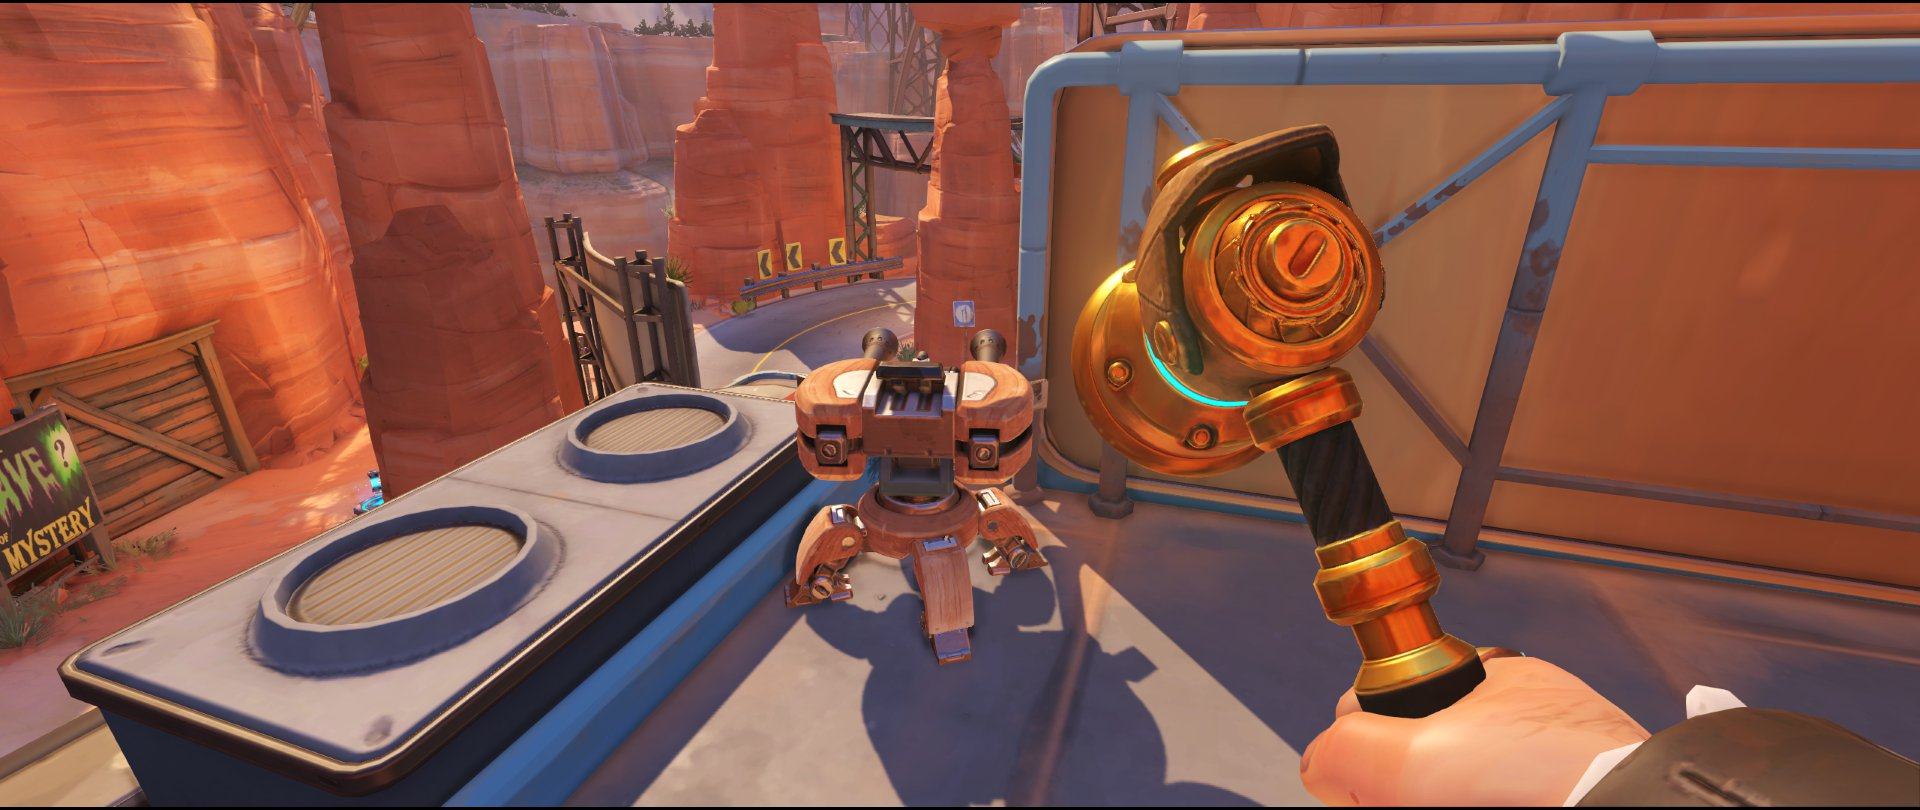 Gas standard high ground turret placement Torbjorn Route 66 Overwatch